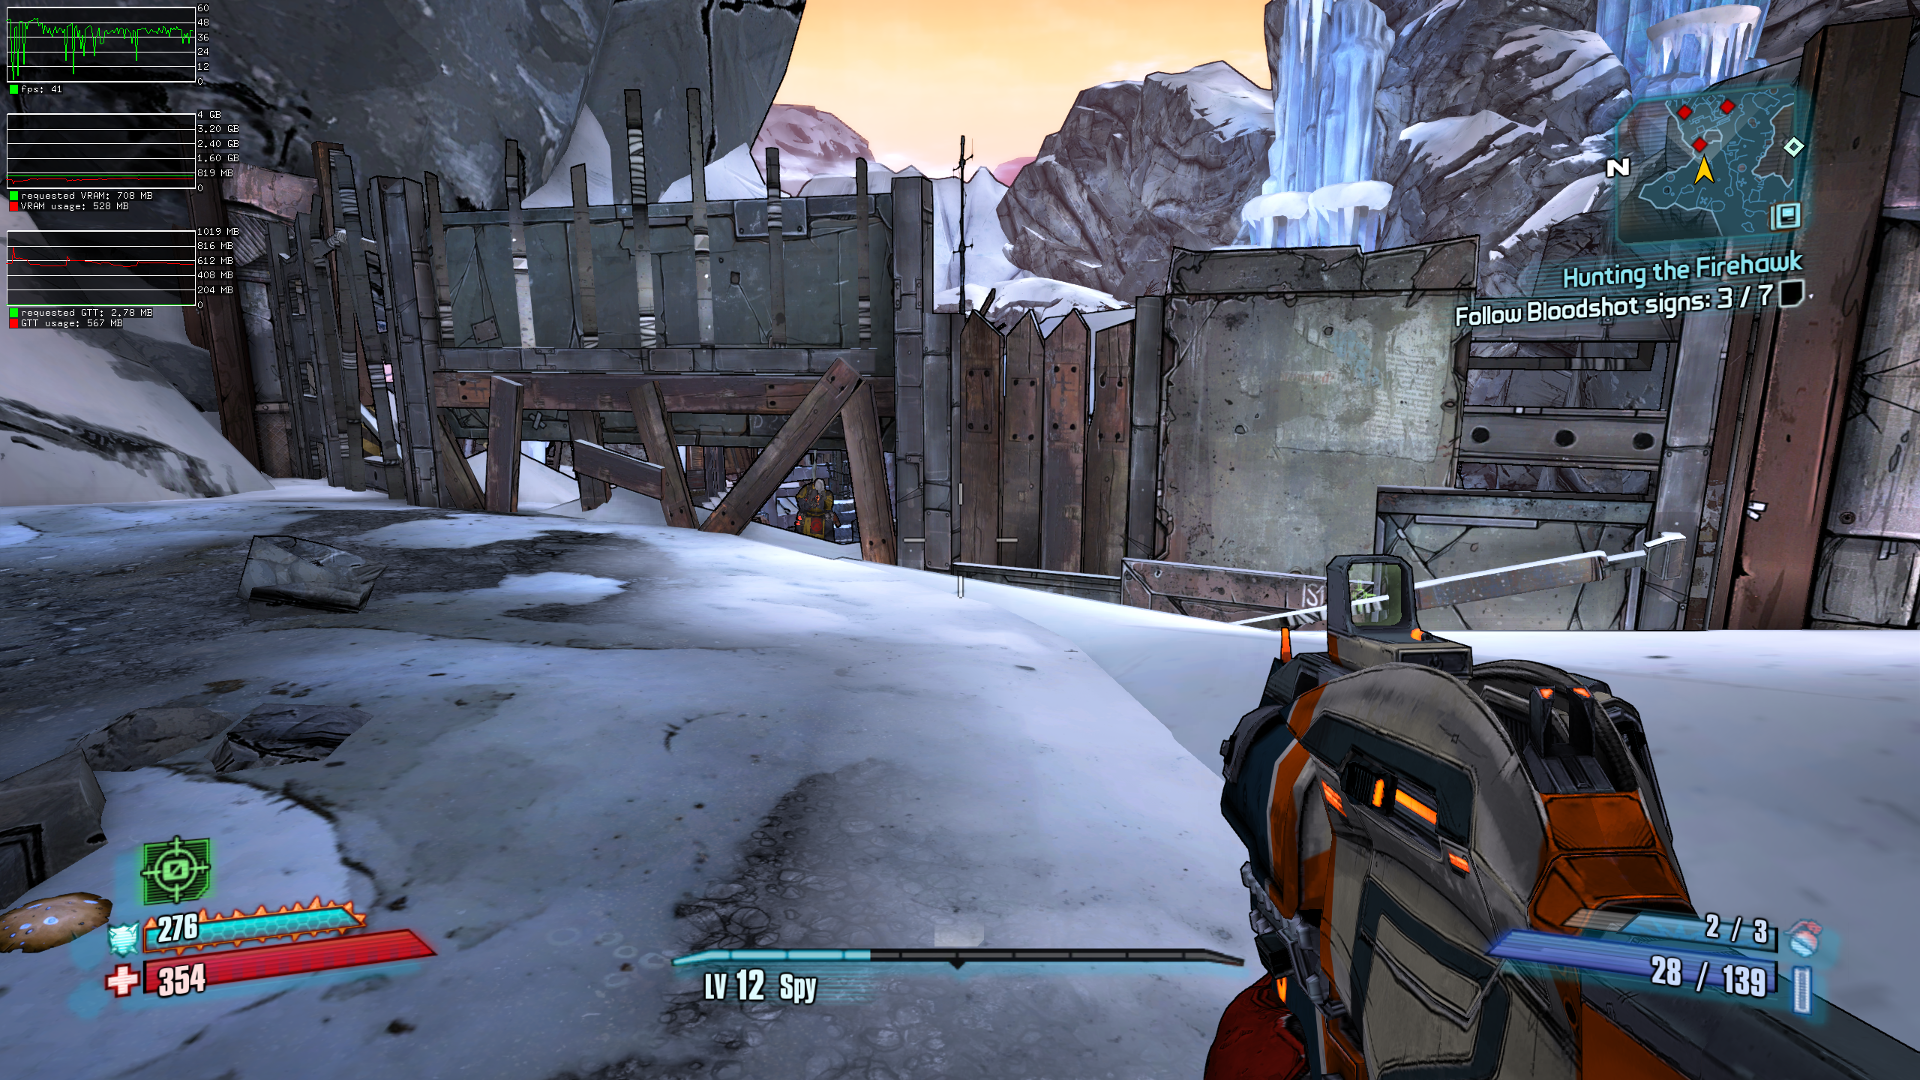 84570 – Borderlands 2/Pre-Sequel: Constant frame rate drops while